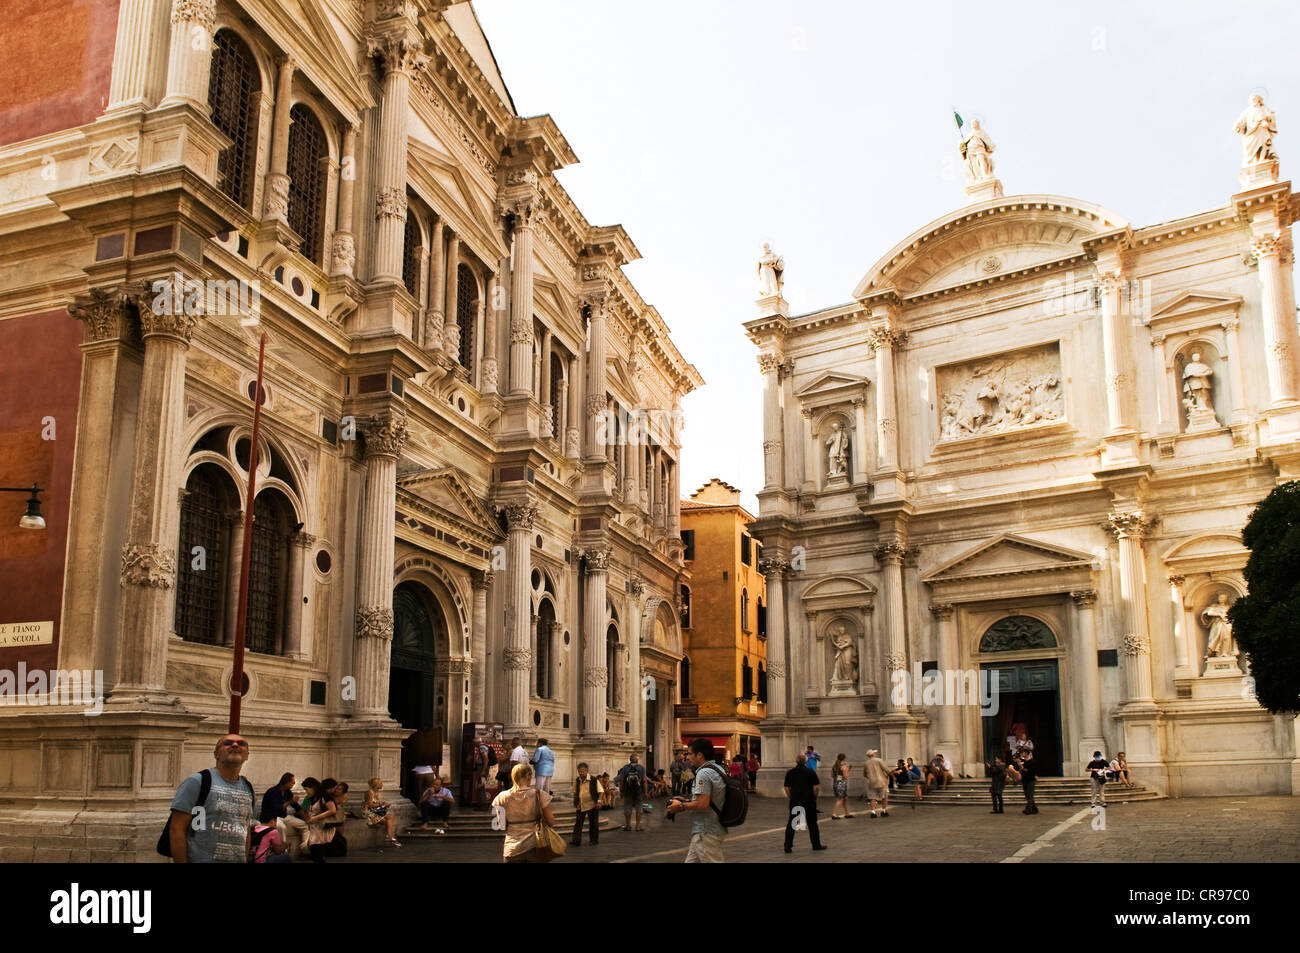 Left, the Scuola Grande di San Rocco with Tintoretto's world-famous exhibition, Tintoretto painted 56 pictures - Stock Image